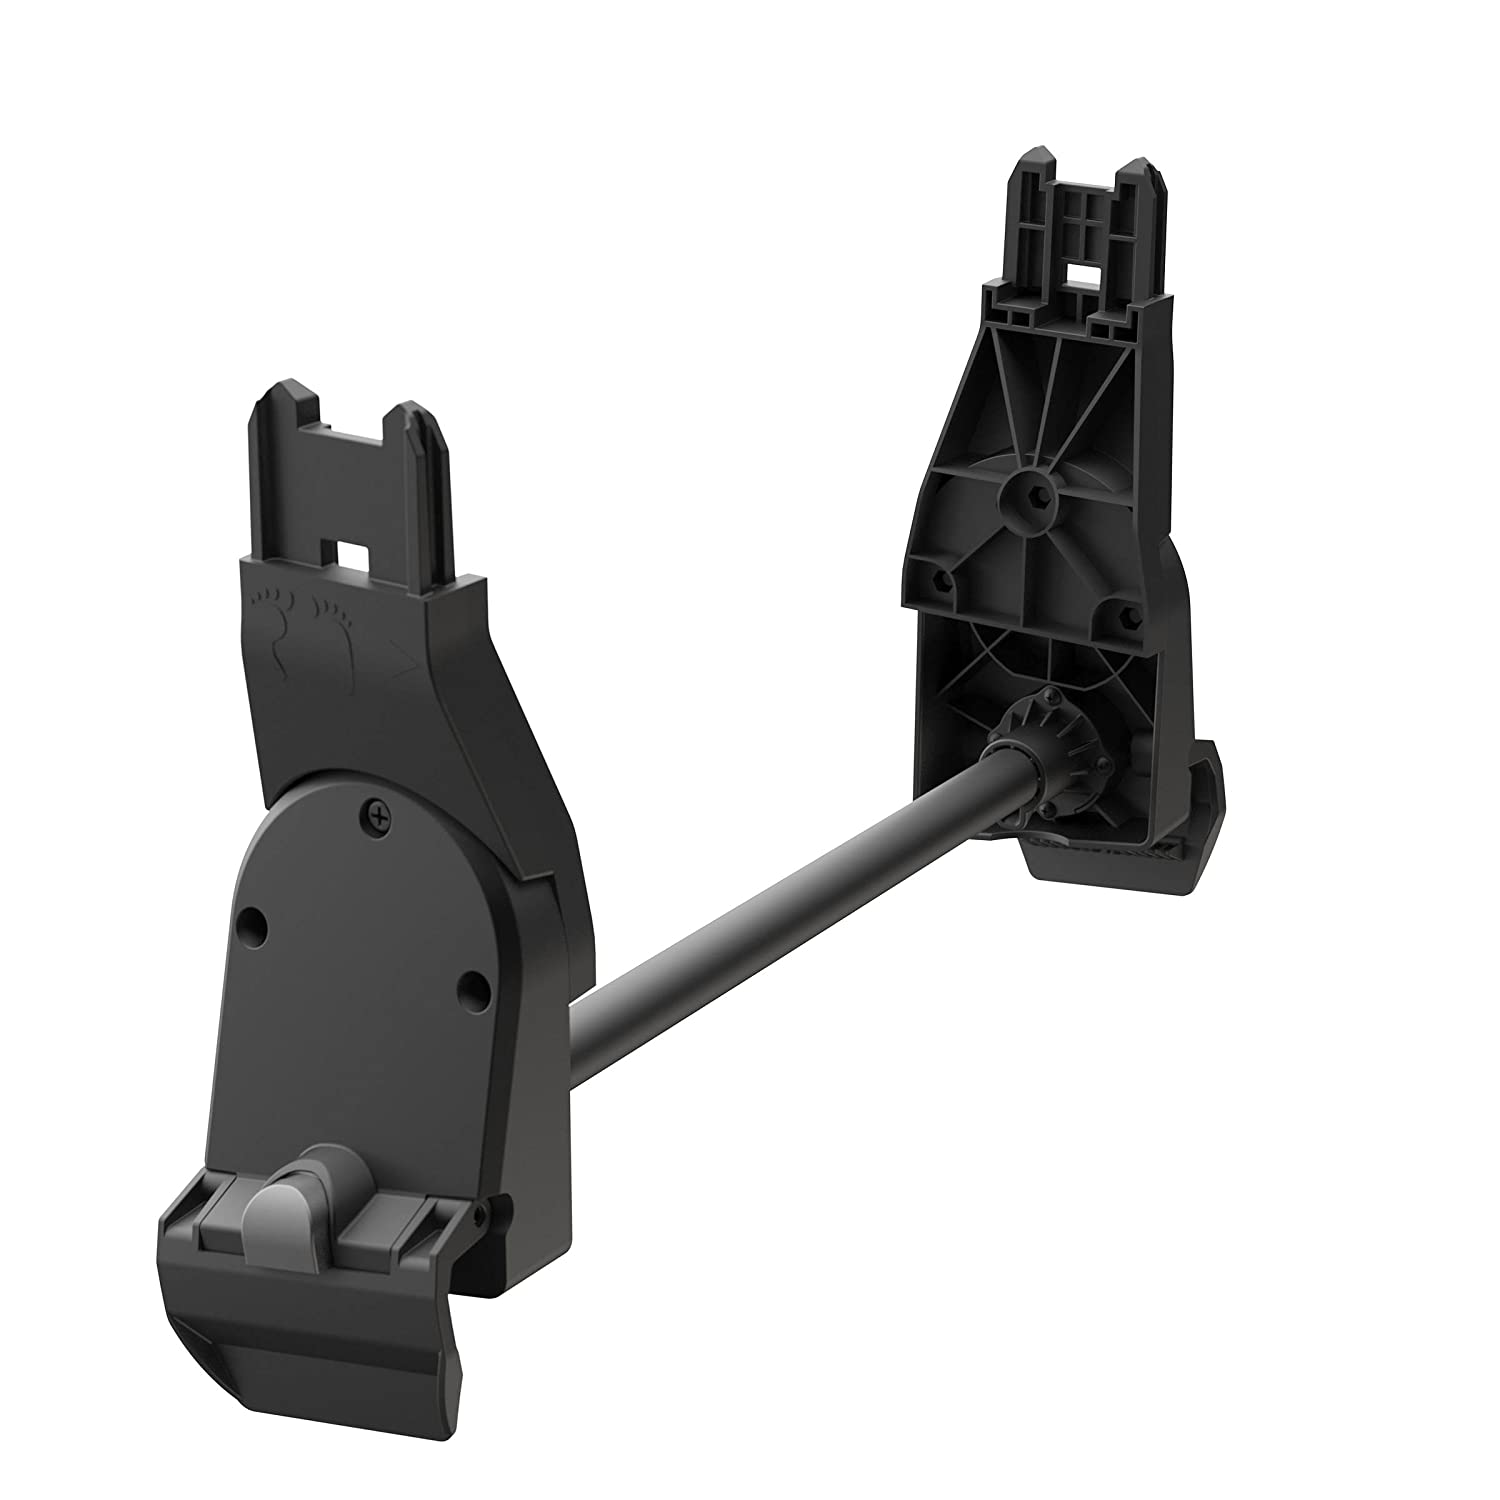 Veer Cruiser Infant Car Seat Adapter for Uppababy Infant Car Seats